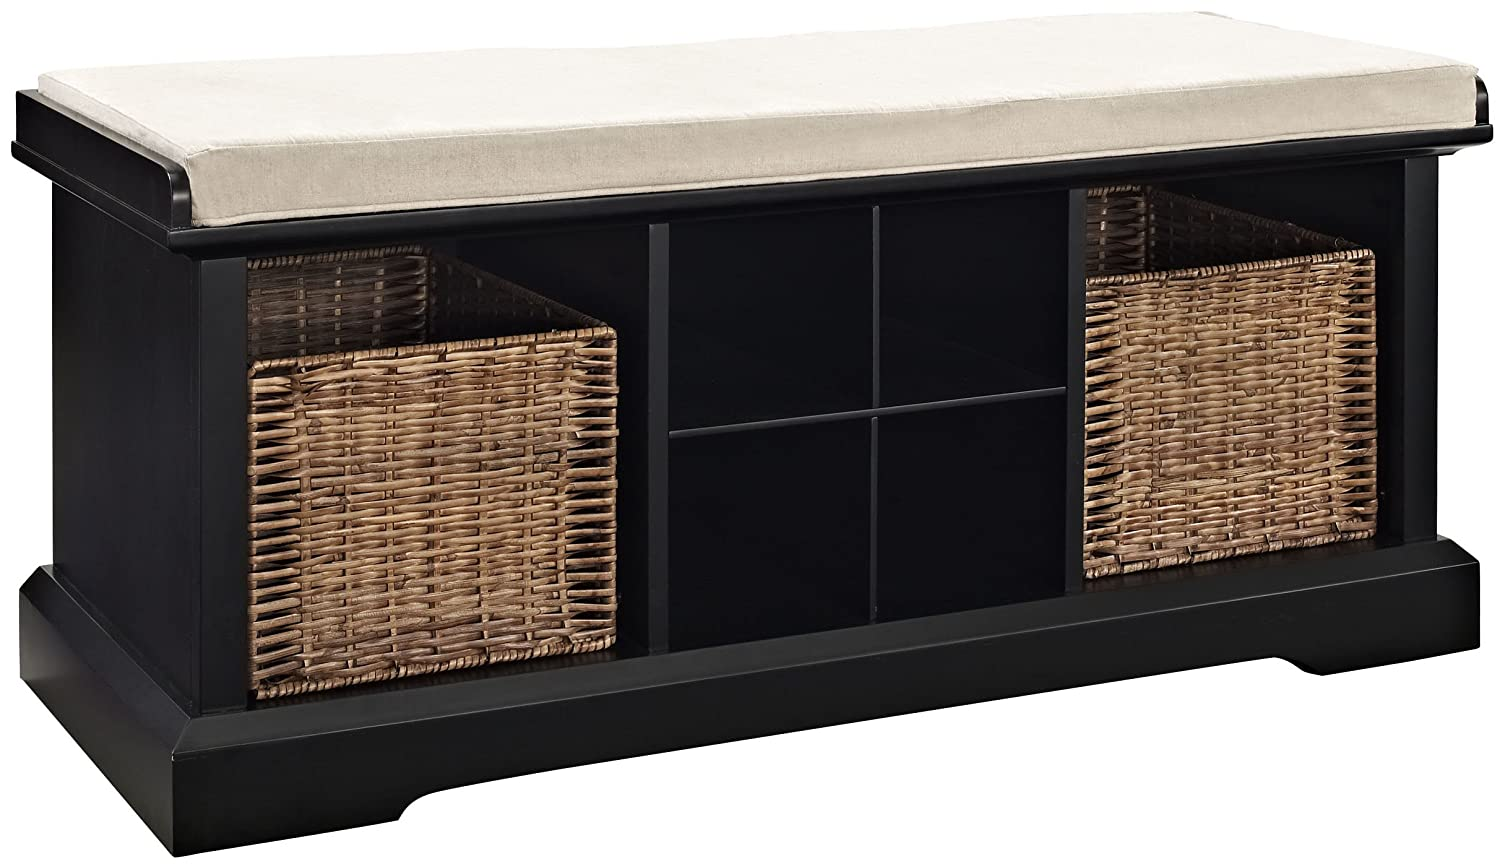 Amazon com crosley furniture brennan entryway storage bench with wicker baskets and cushion black kitchen dining